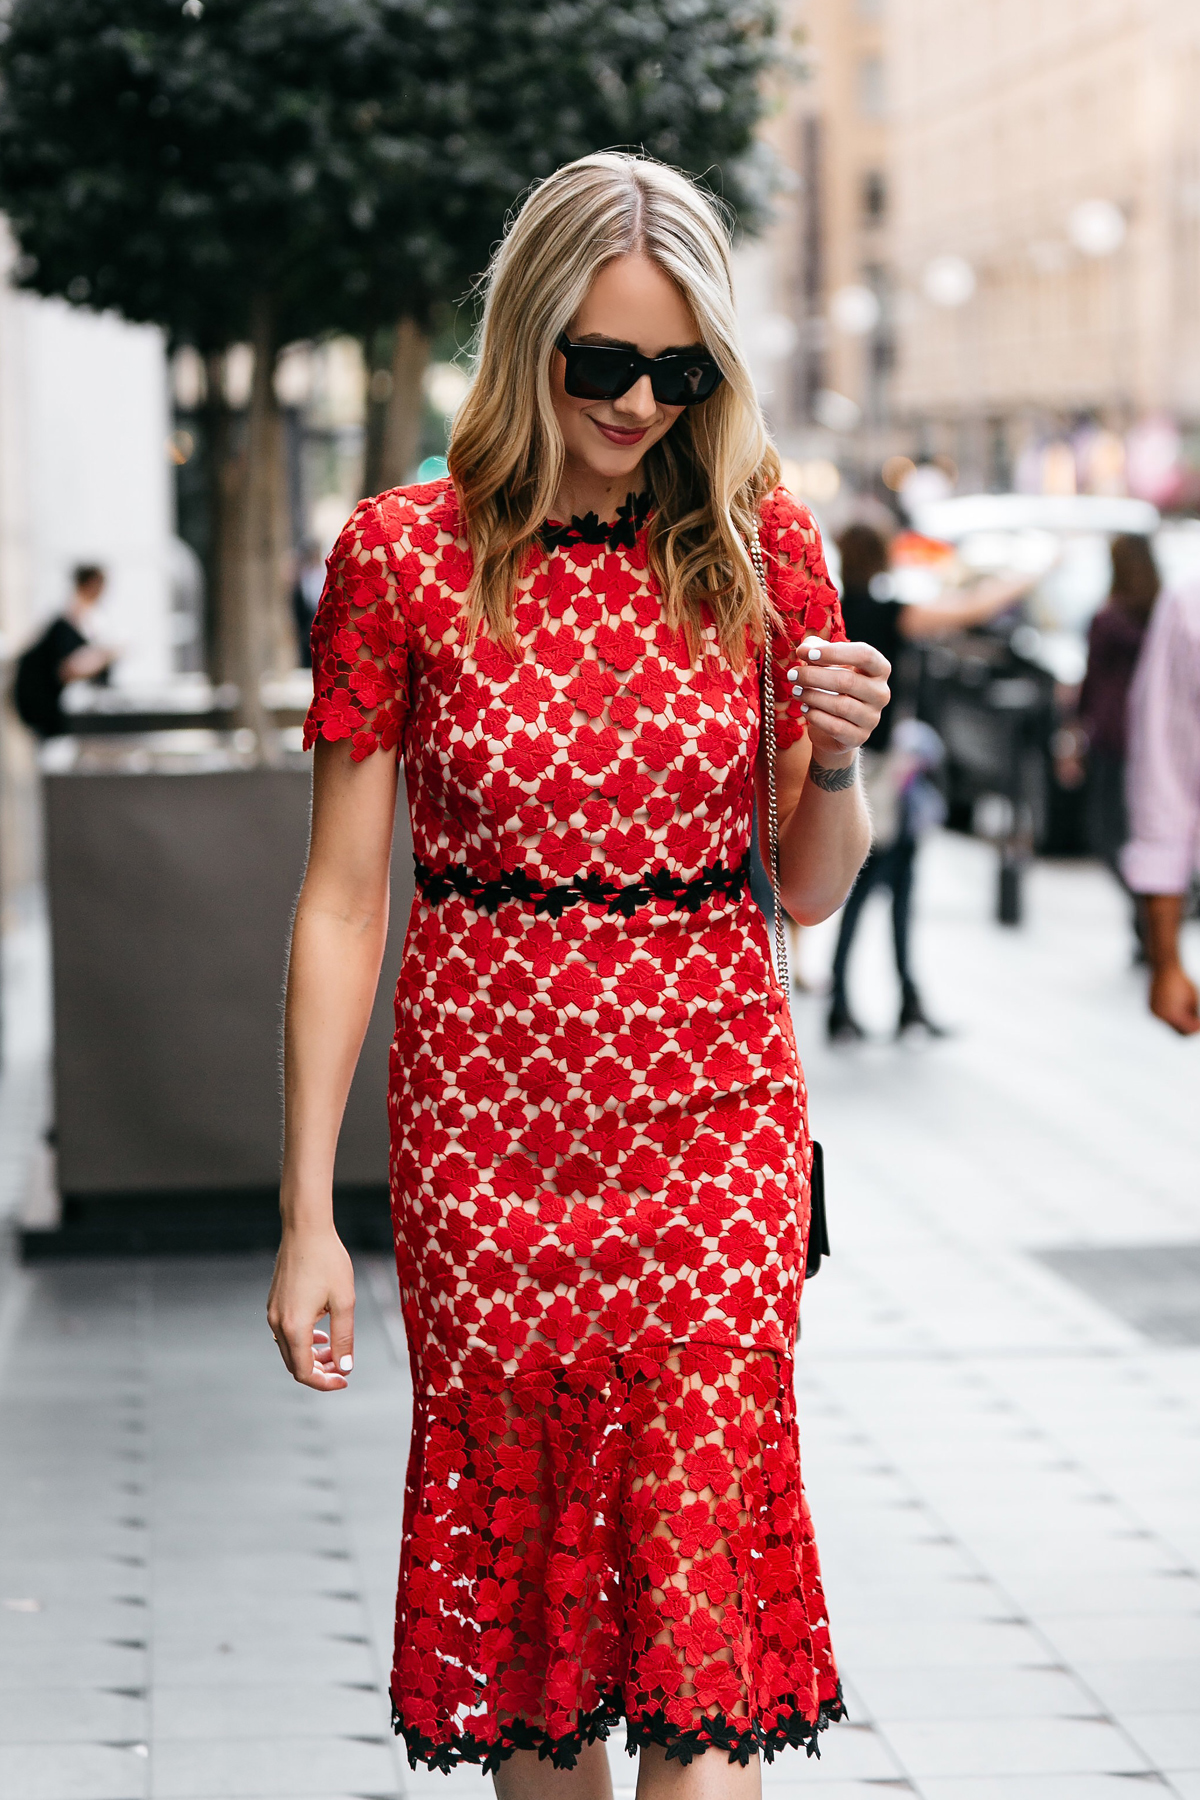 Fashion Jackson, Dallas Blogger, Fashion Blogger, Street Style, Jill Stuart Floral Red Lace Dress